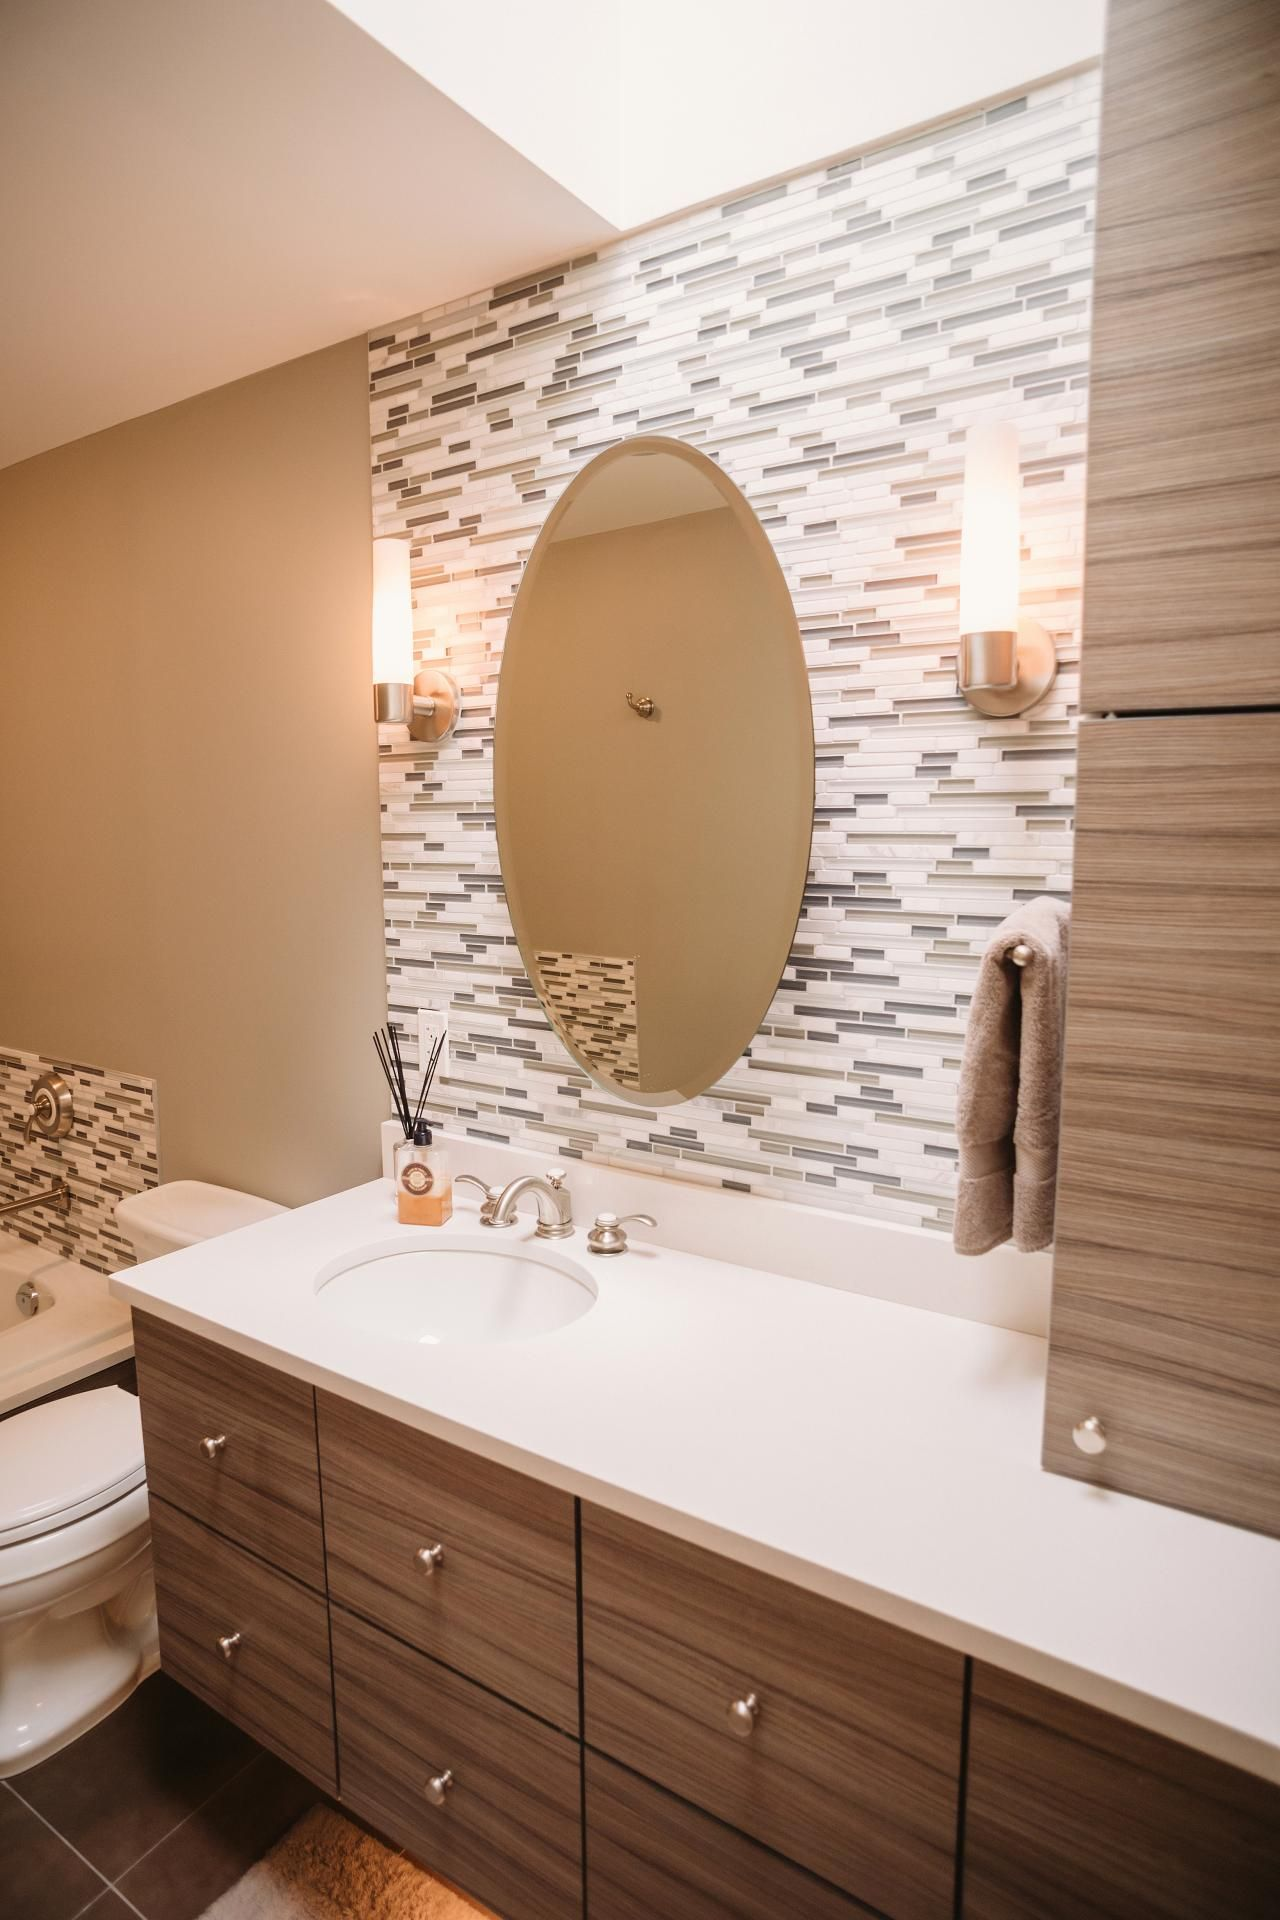 Bathroom Tile Accent Ideas Part - 27: The Attractive Accent Wall In This Contemporary Bathroom Features Thin Tiles  In White And Neutral Shades. Cylindrical Sconces Illuminate The Space, ...